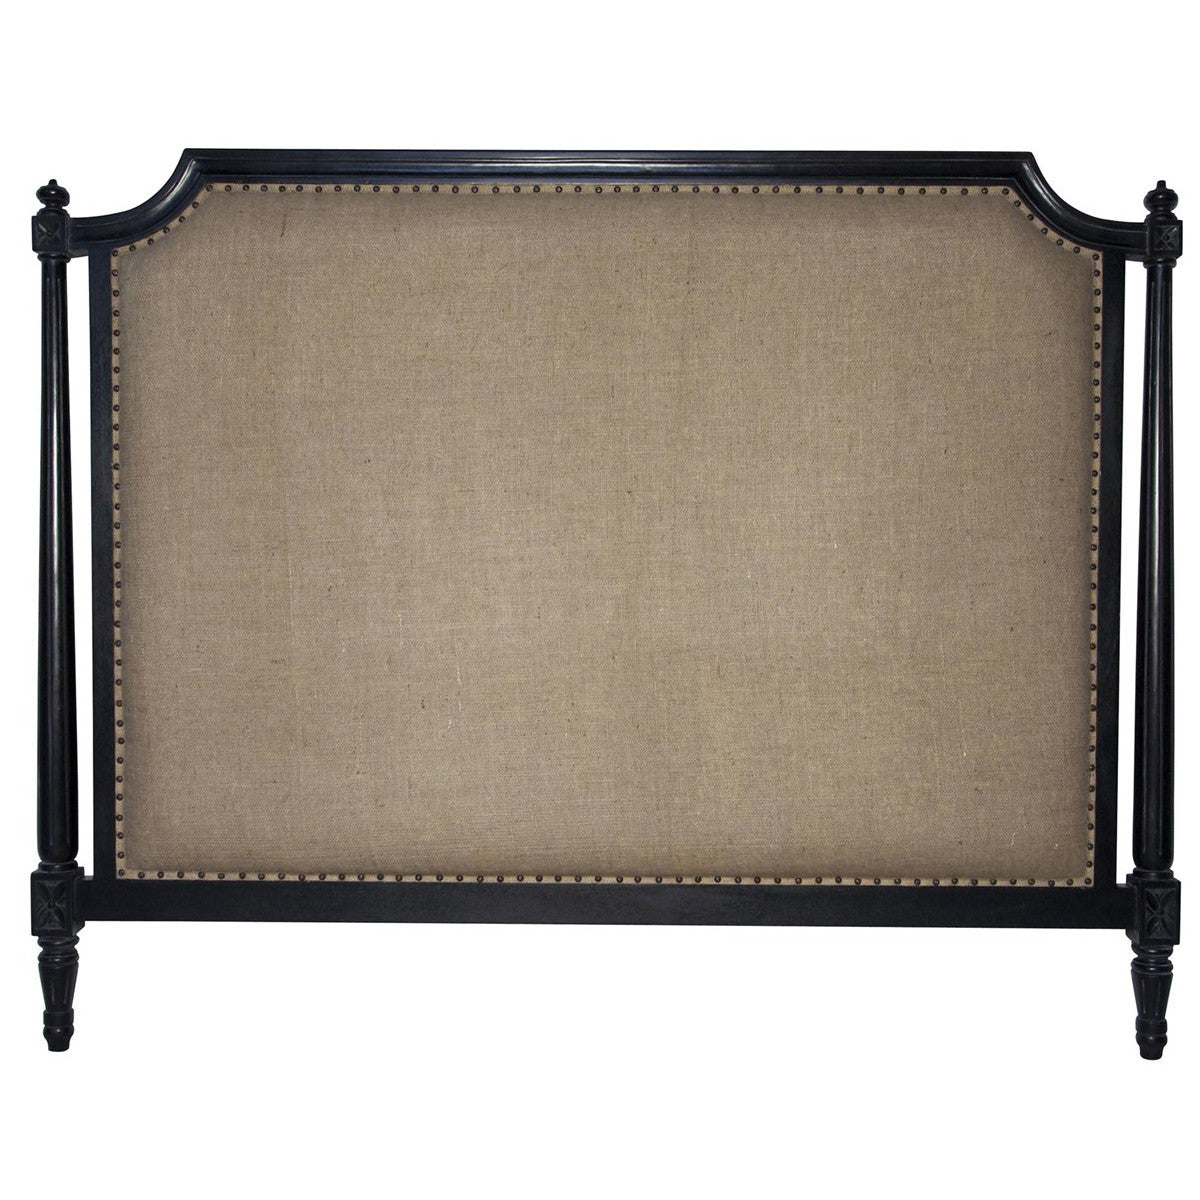 Noir - Isabelle Headboard, CA King, Hand Rubbed Black